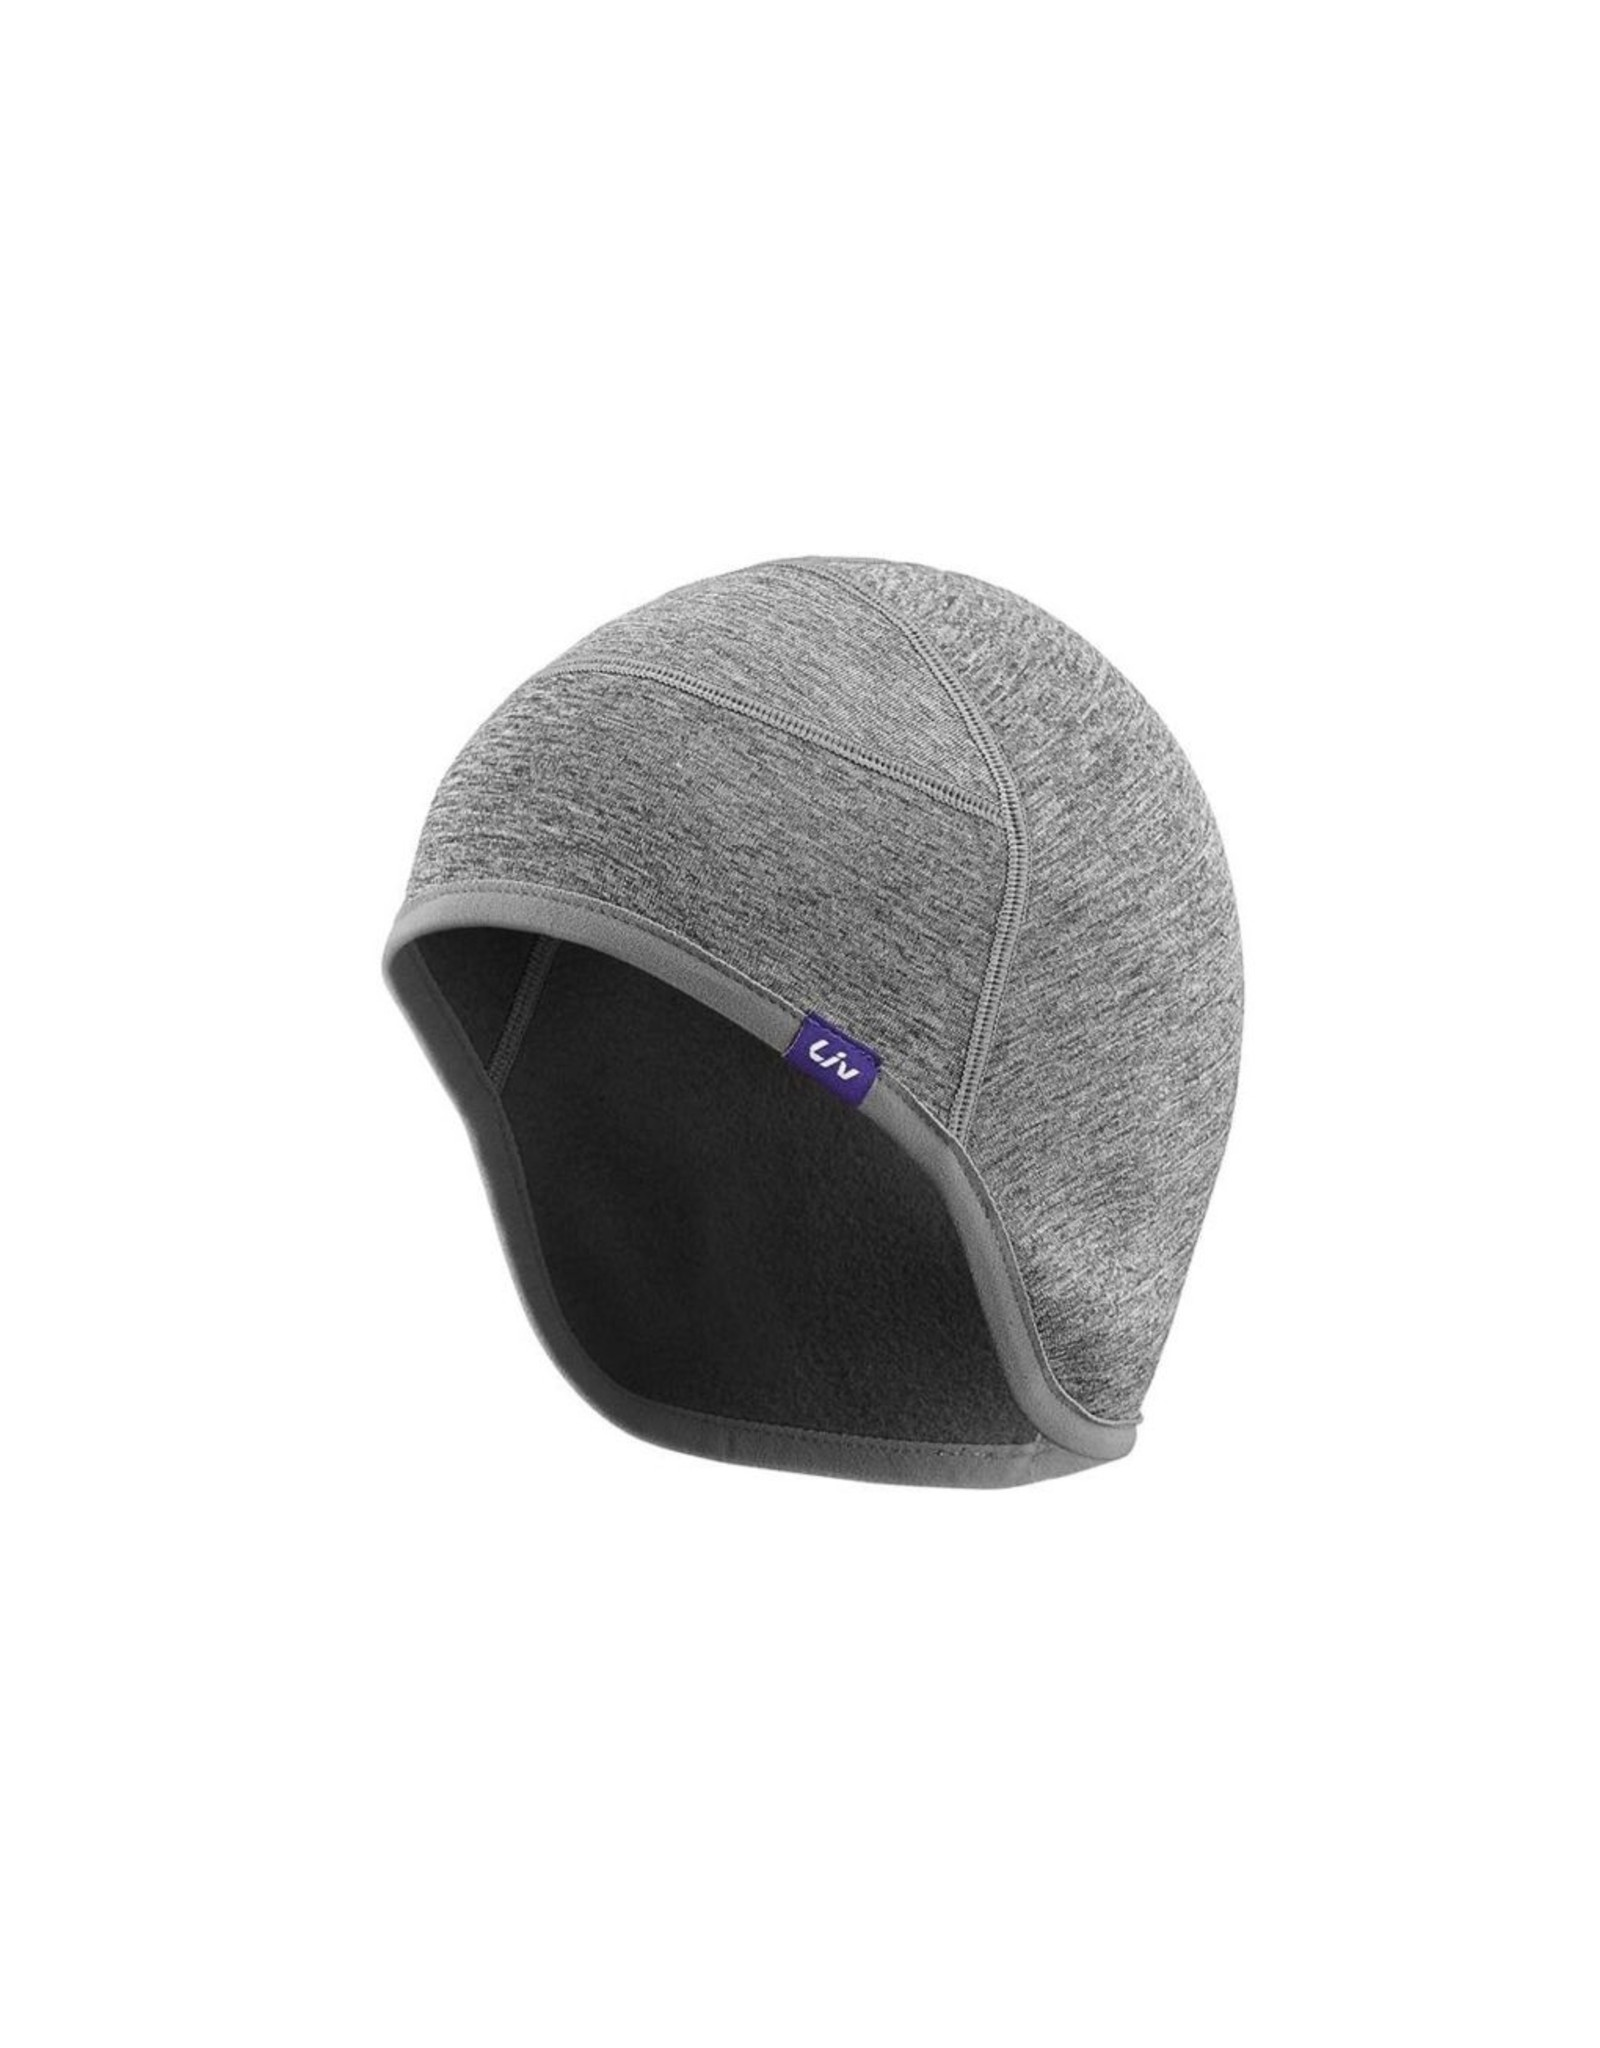 Liv Liv thermtextura skull cap OSFM Heather grey